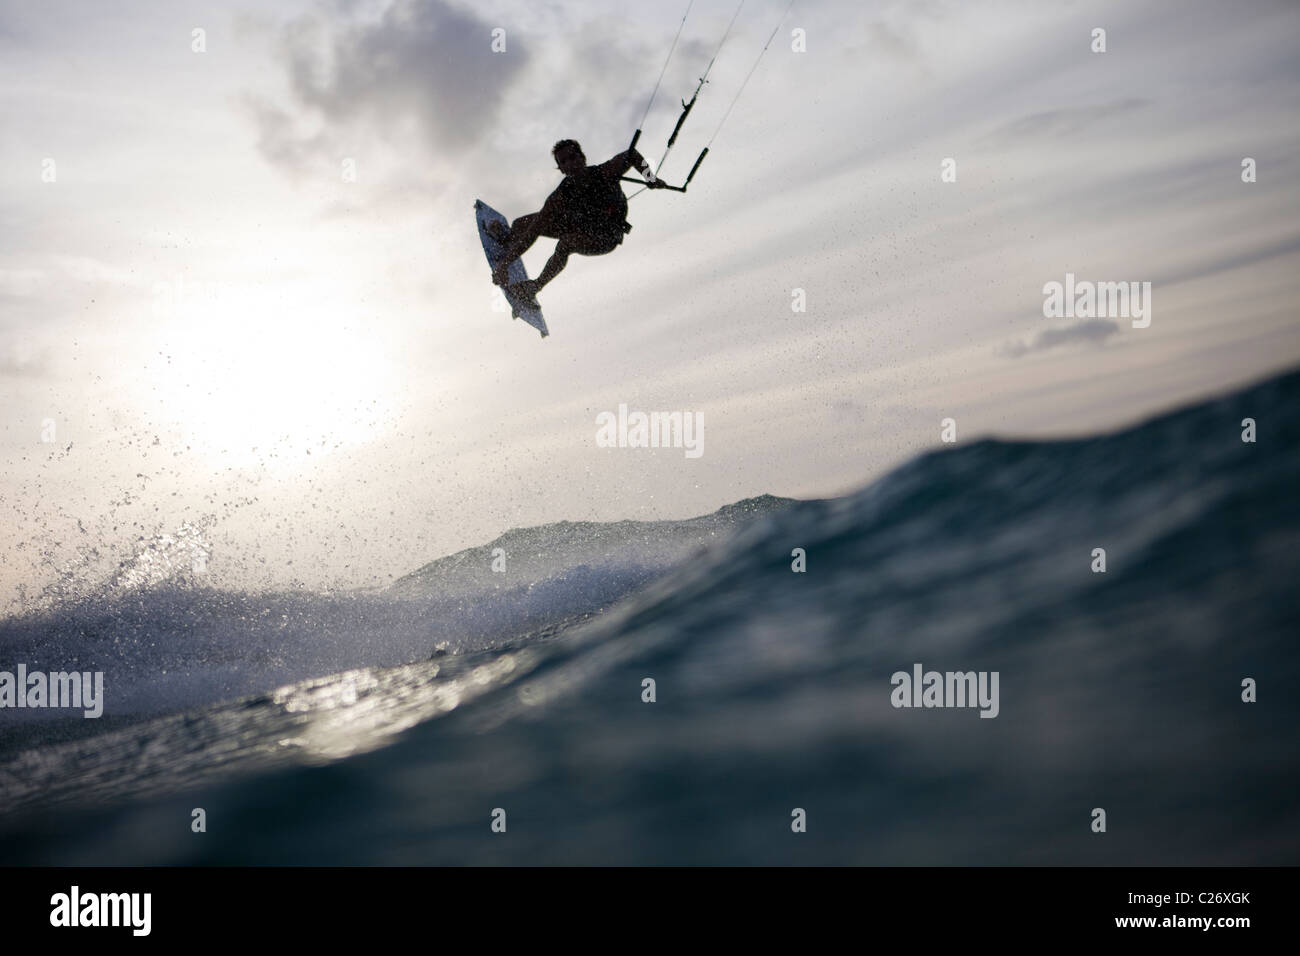 Kiteboarding Waimanalo @ Sunrise, male, David Giardini, airtime, jumping - Stock Image